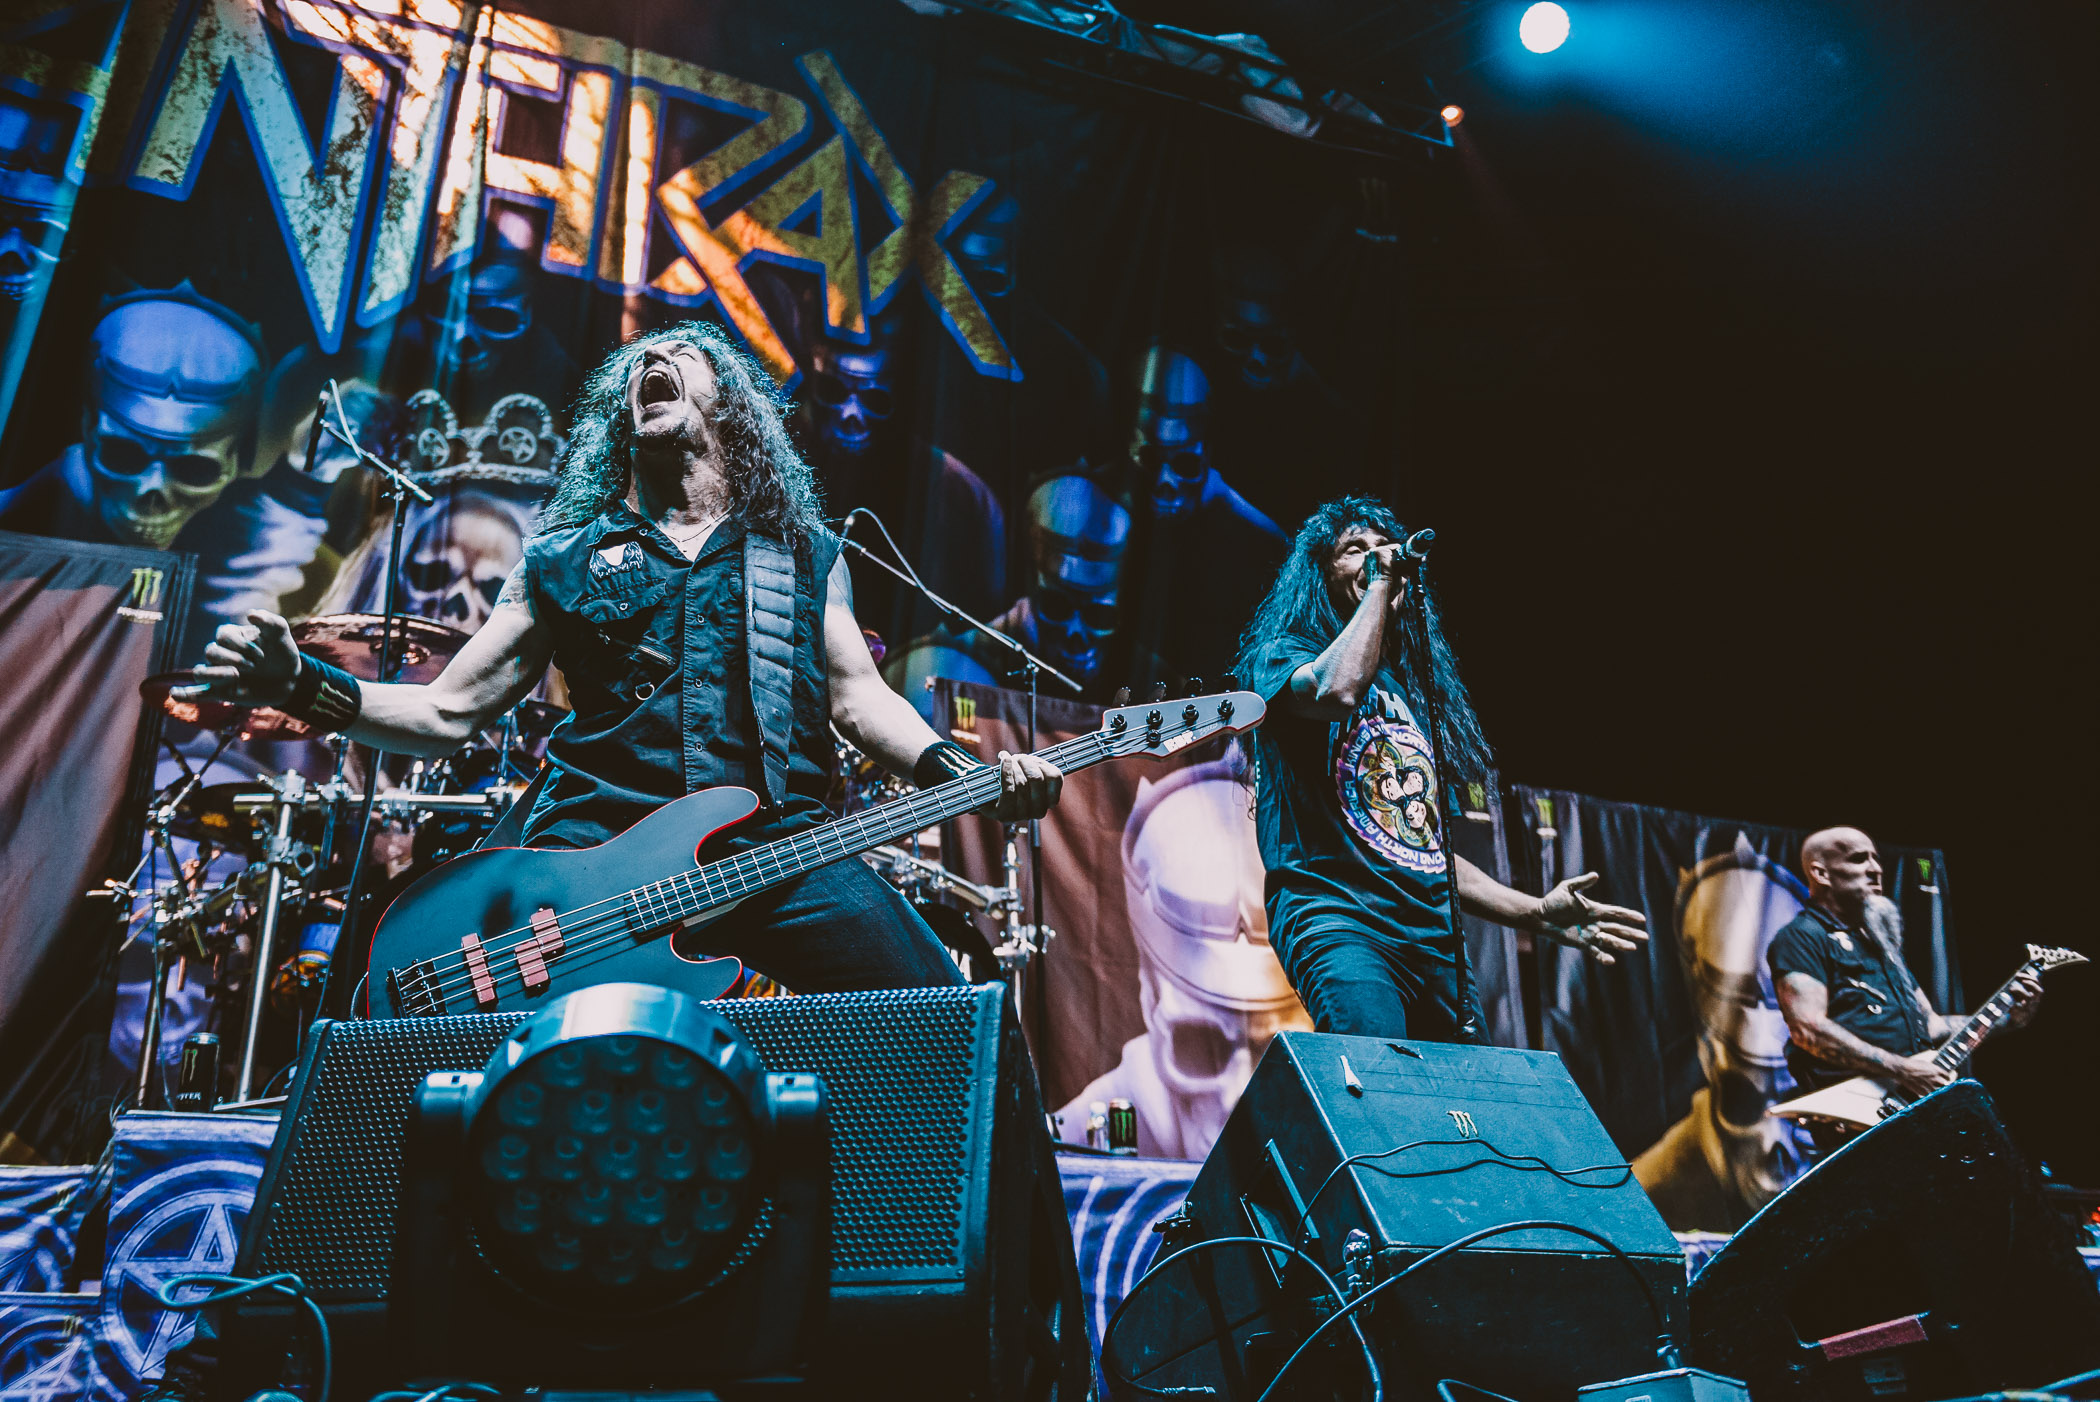 3_Anthrax-Pacific_Coliseum-Timothy_Nguyen-20180516-23.jpg